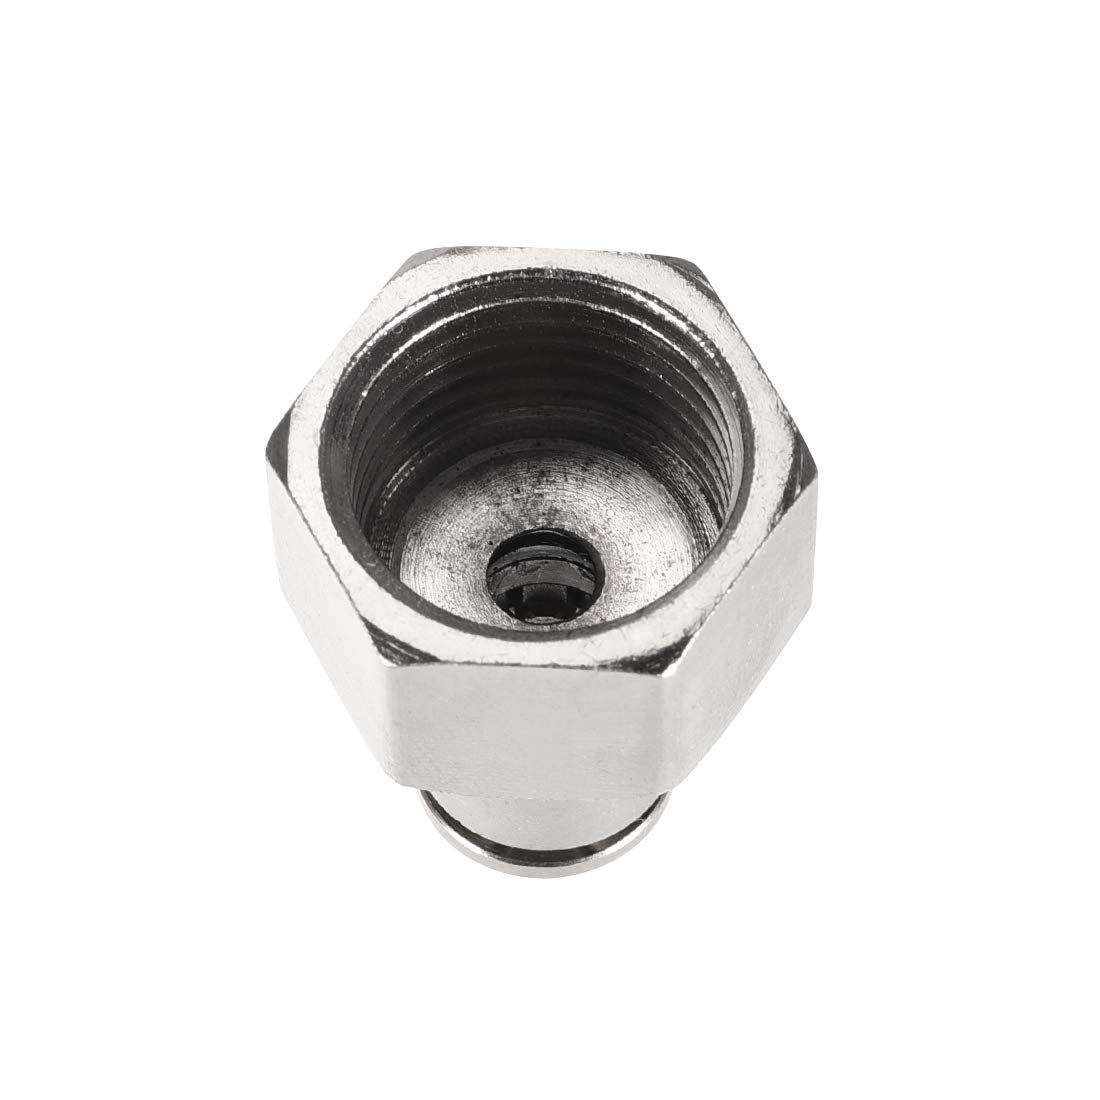 uxcell Push to Connect Tube Fittings 8mm Tube OD x 1//2 PT Female Straight Pneumatic Connecter Pipe Fitting Silver Tone 2Pcs